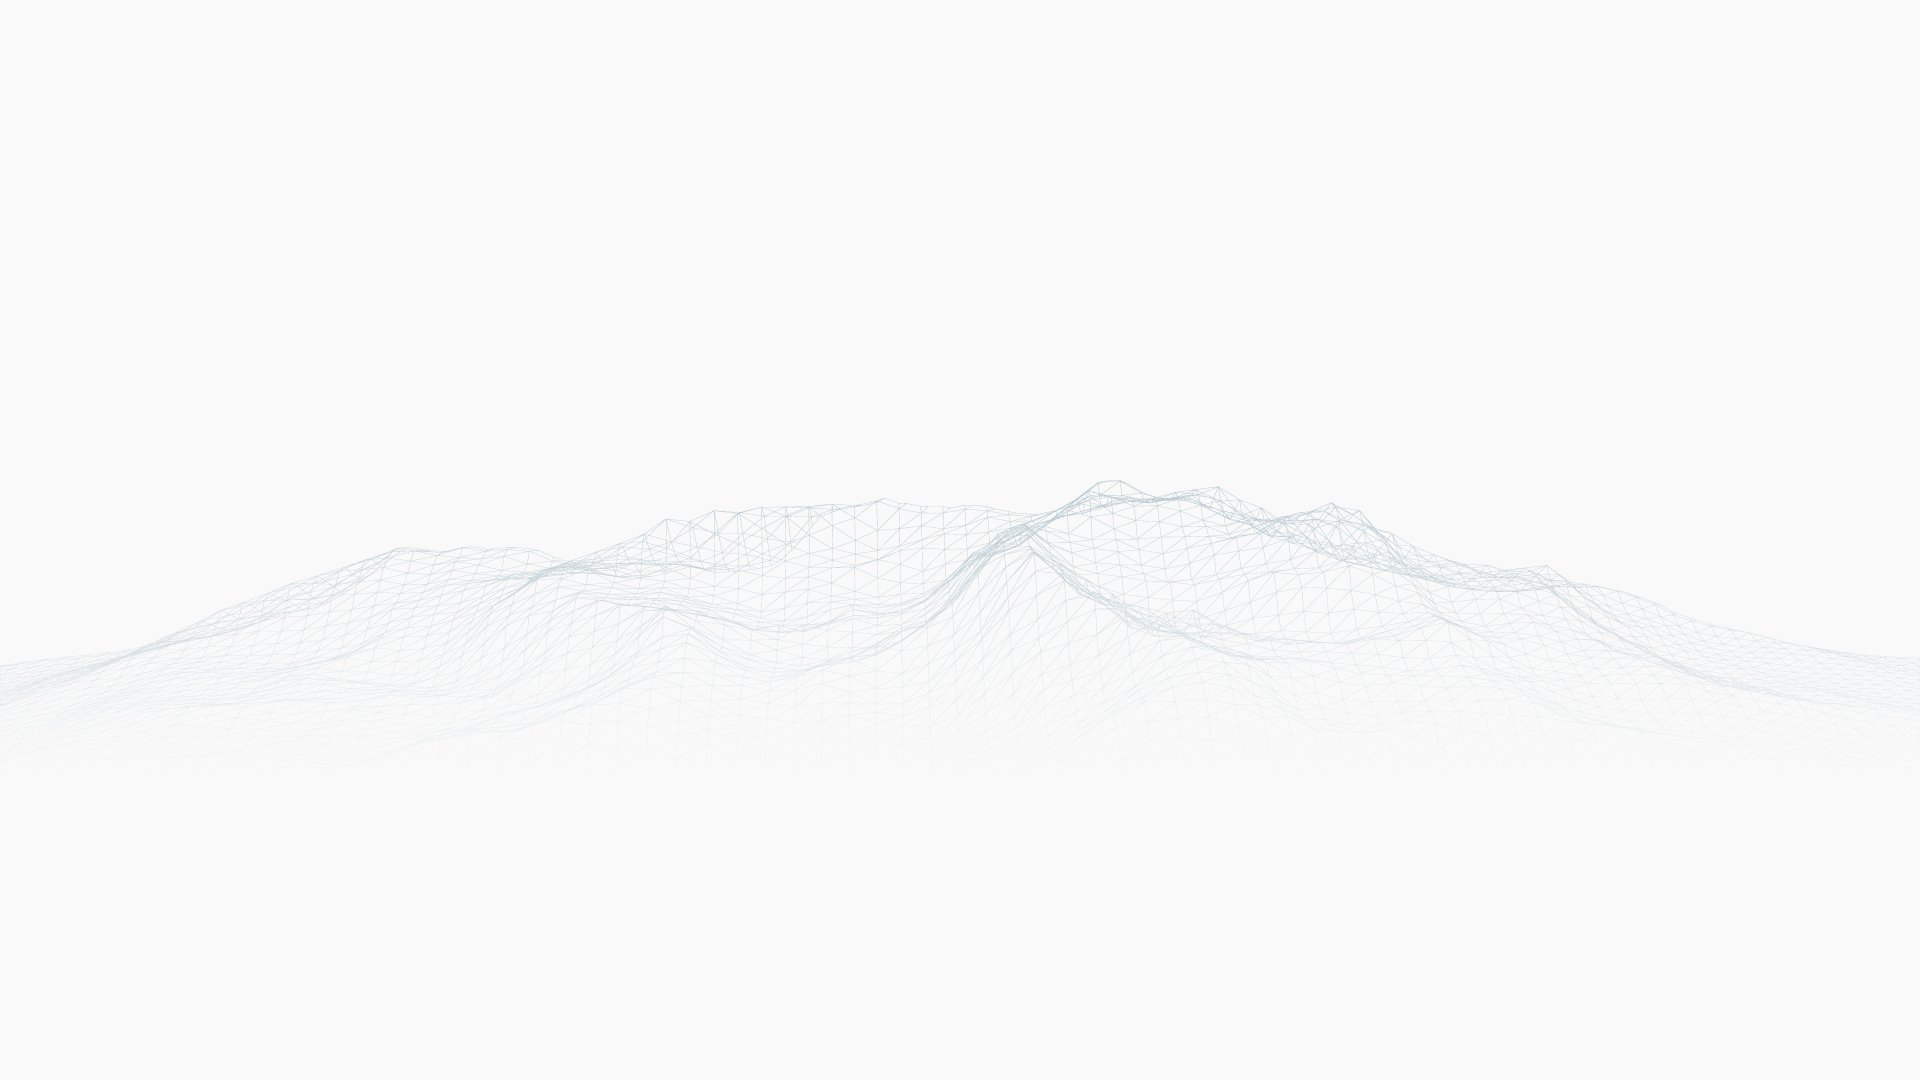 BACKGROUND homepage 3D mesh 3 fade